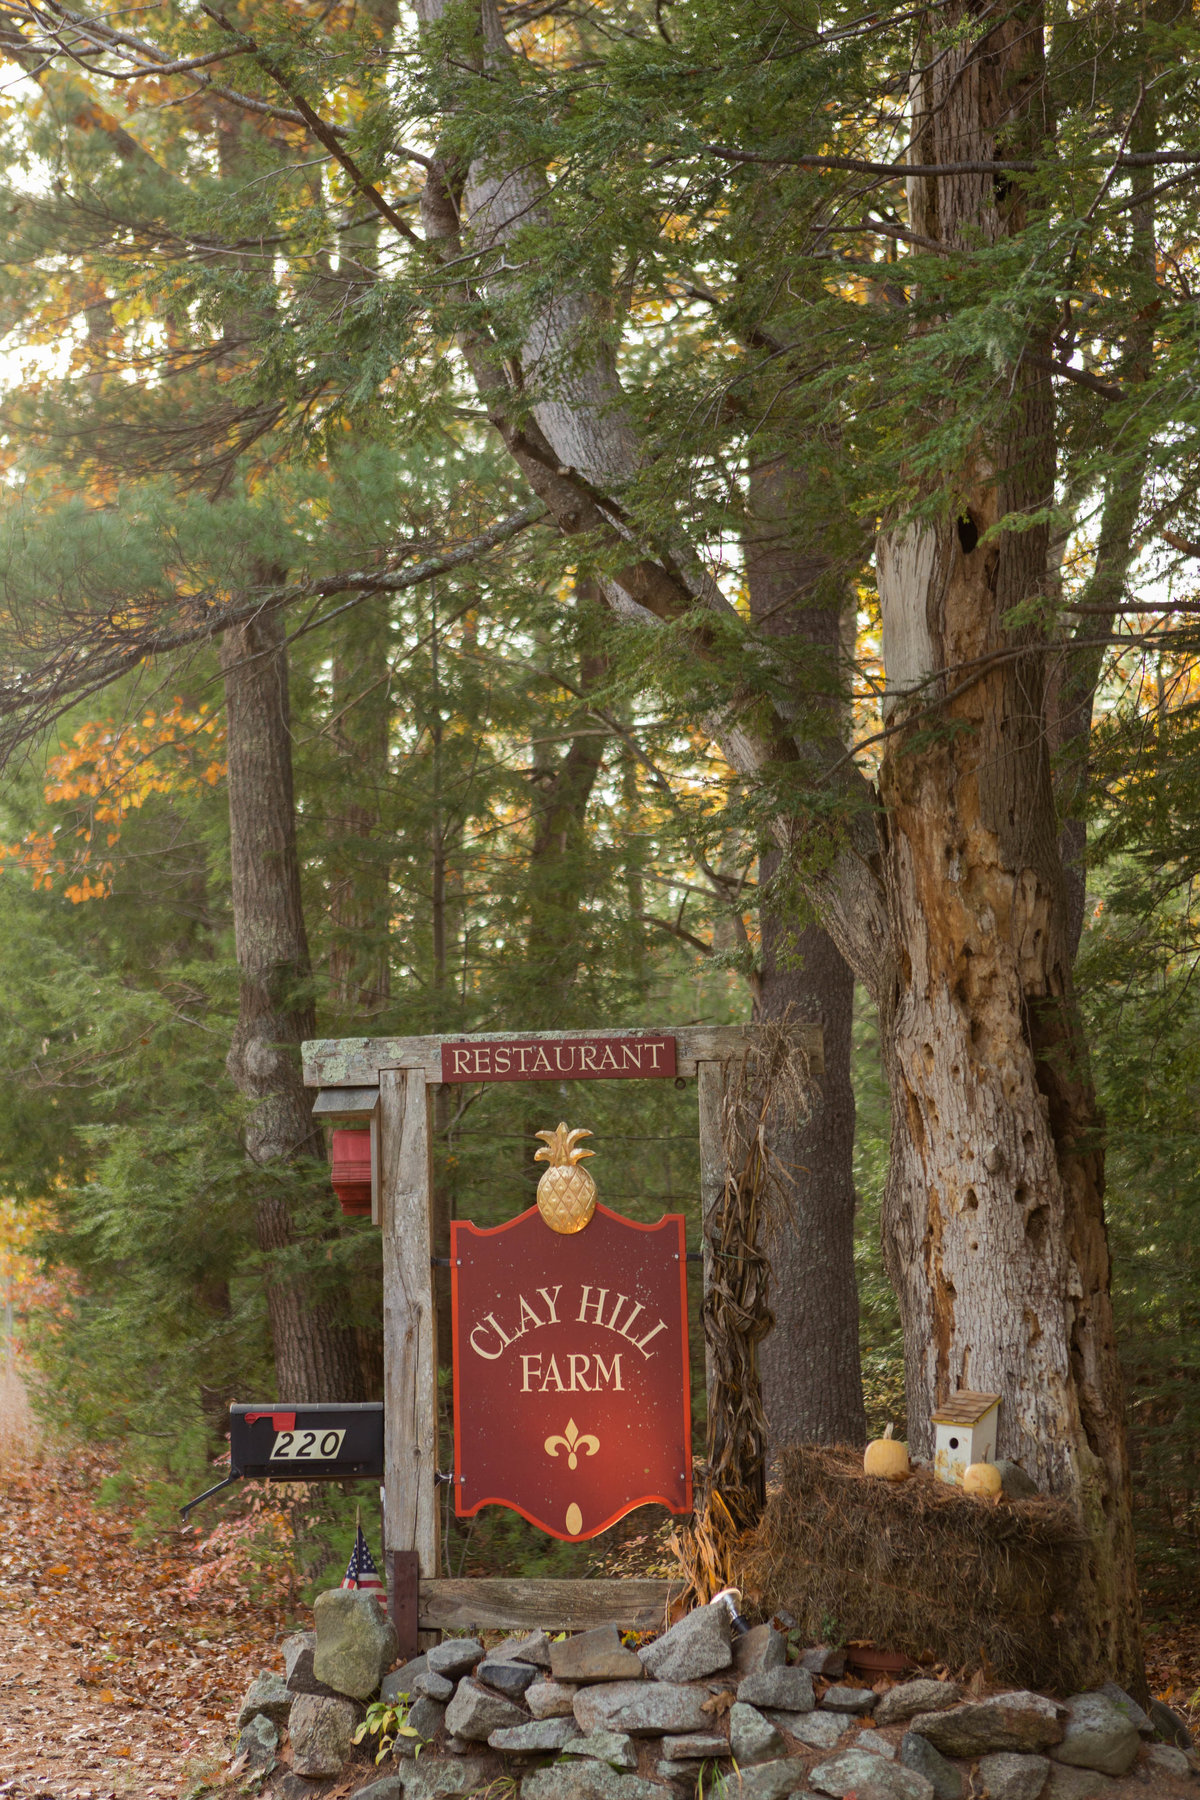 clay hill farm welcome sign